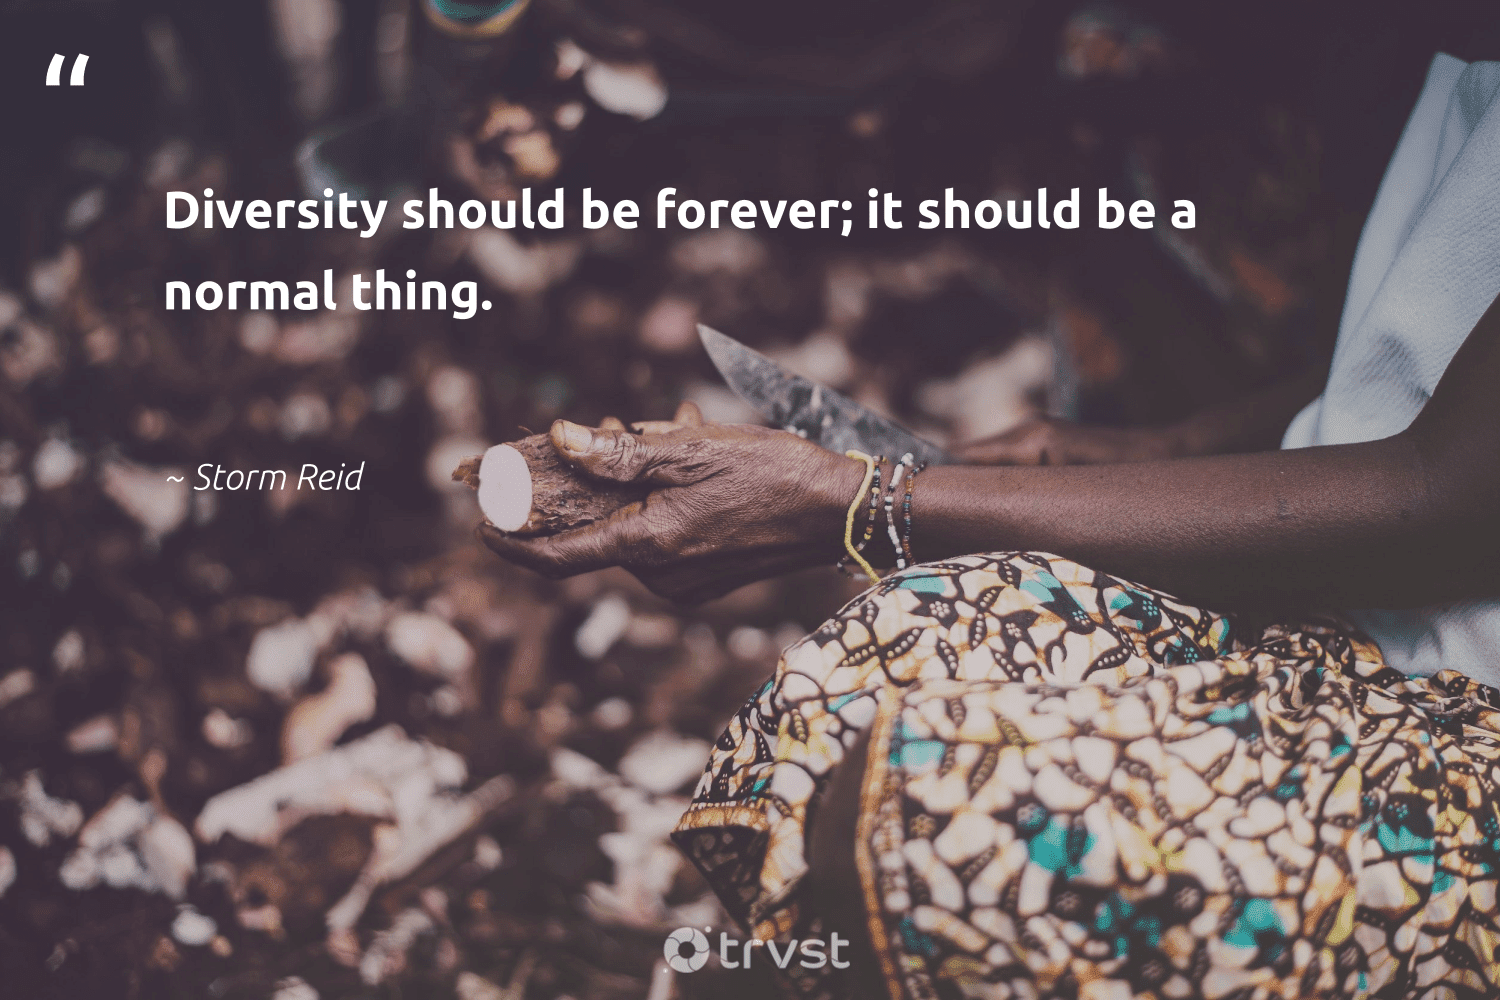 """""""Diversity should be forever; it should be a normal thing.""""  - Storm Reid #trvst #quotes #diversity #representationmatters #discrimination #weareallone #bethechange #gogreen #inclusion #socialgood #socialchange #dosomething"""